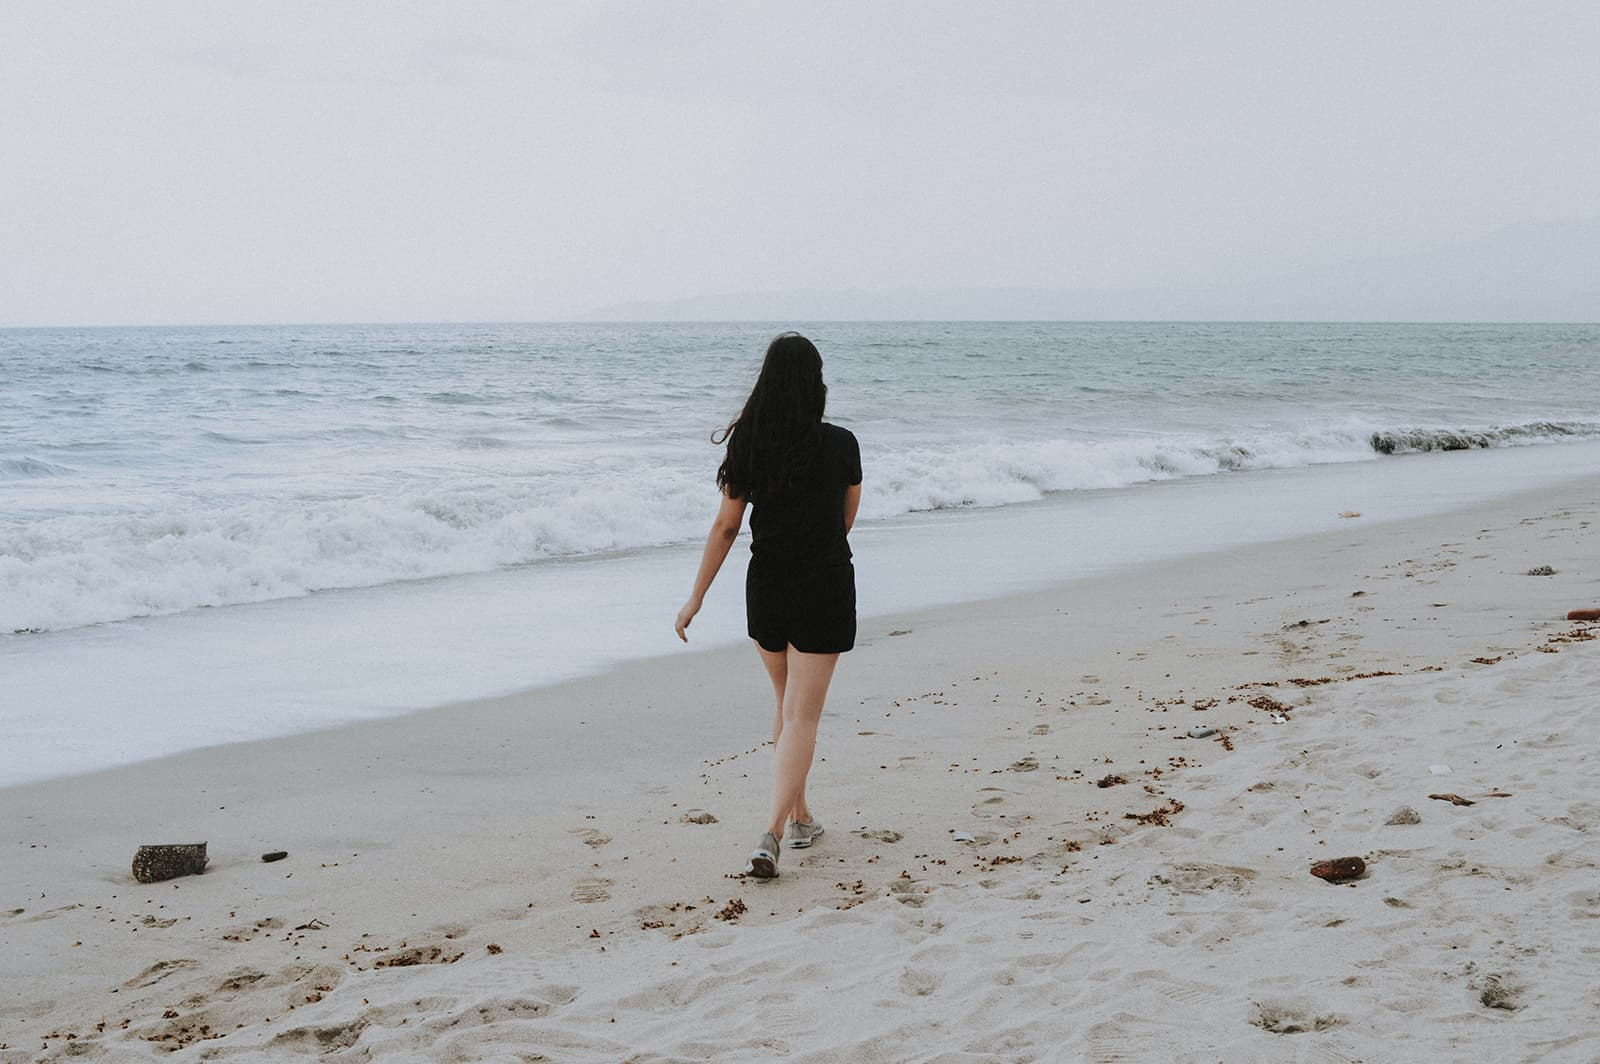 woman walking on the beach alone during daytime